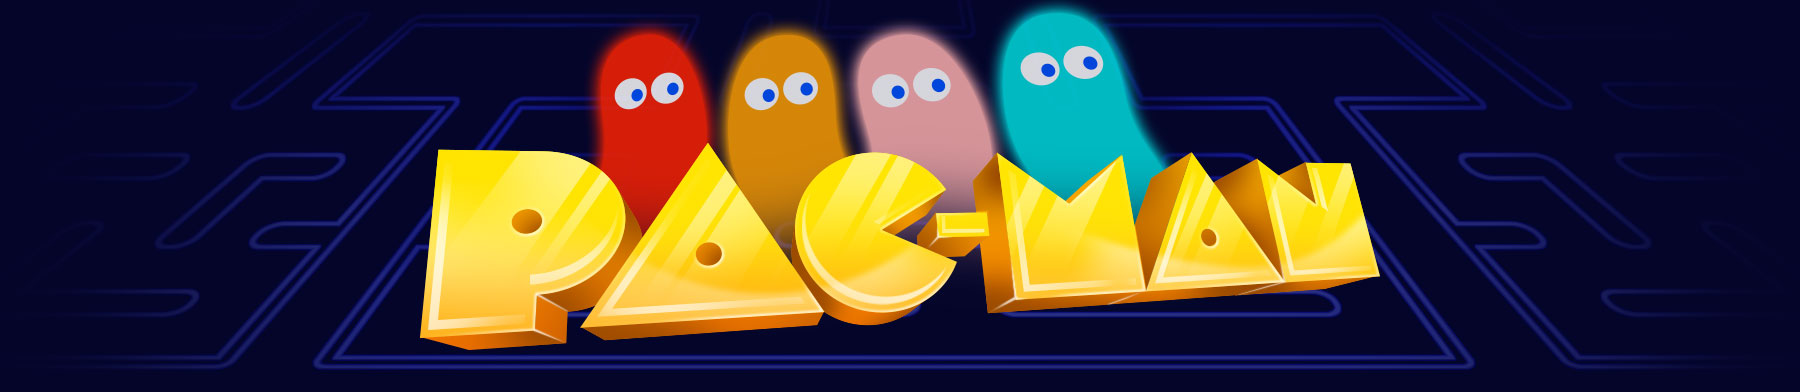 10x6.5ft Vinyl Pac-Man Theme Background Blue Maze Black Background for Game Photography Background Boy Interior Decoration Wallpaper LYZY0947 for Party Decoration Birthday YouTube Videos School Photos